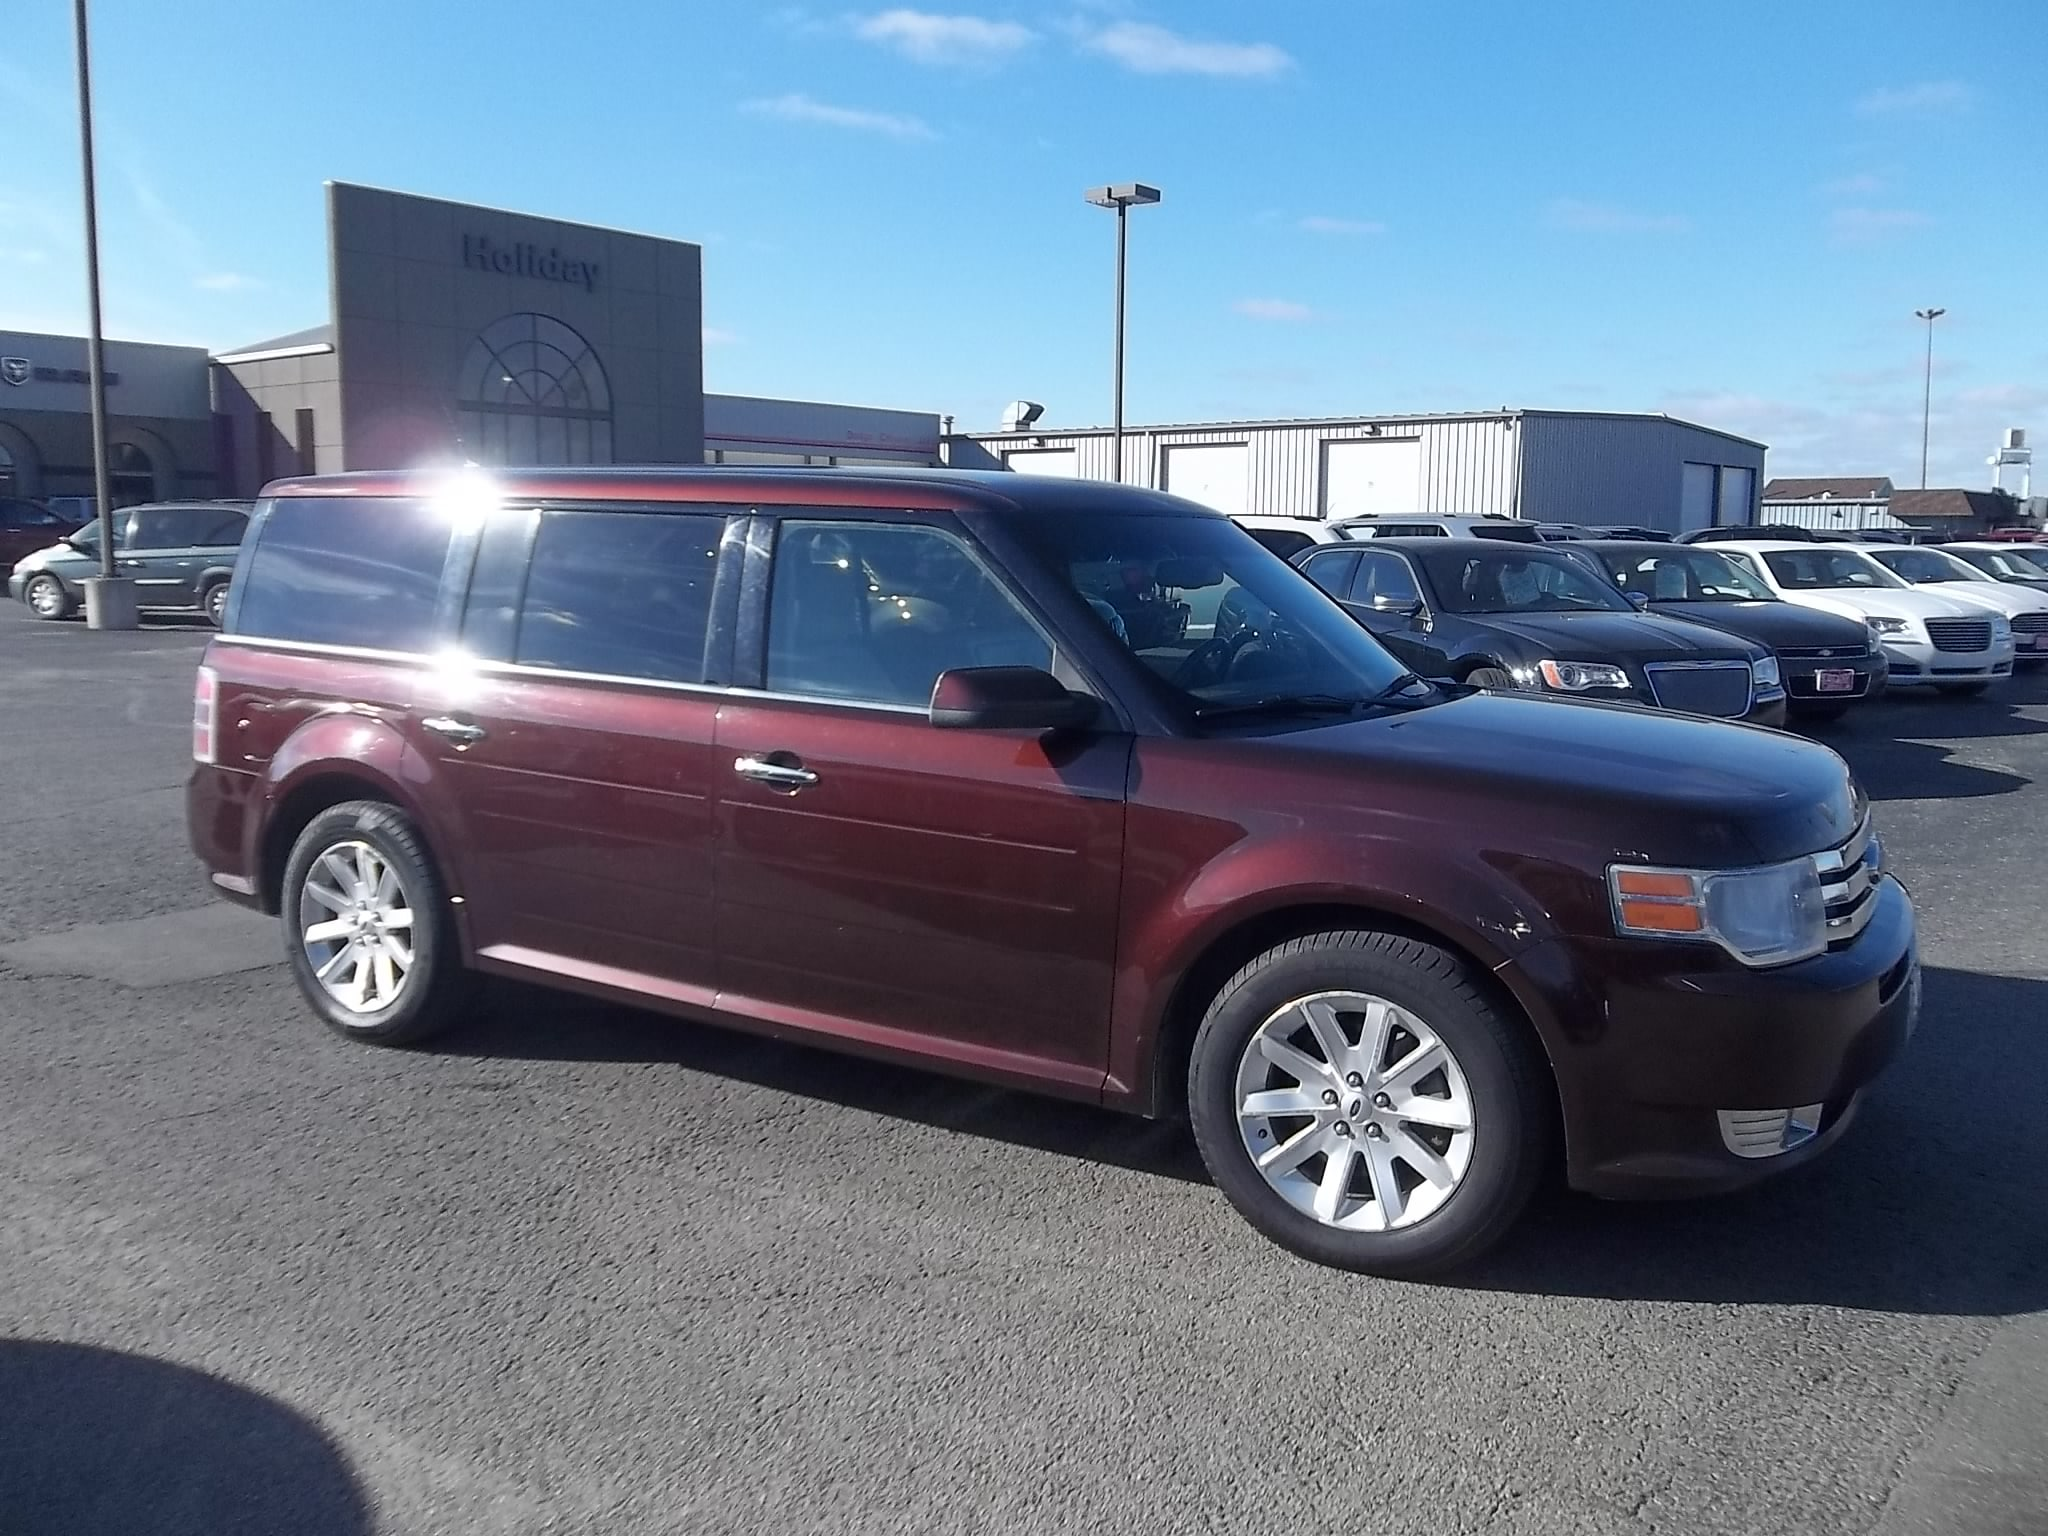 used 2010 ford flex for sale austin mn vin 2fmhk6cc3abd01685. Black Bedroom Furniture Sets. Home Design Ideas